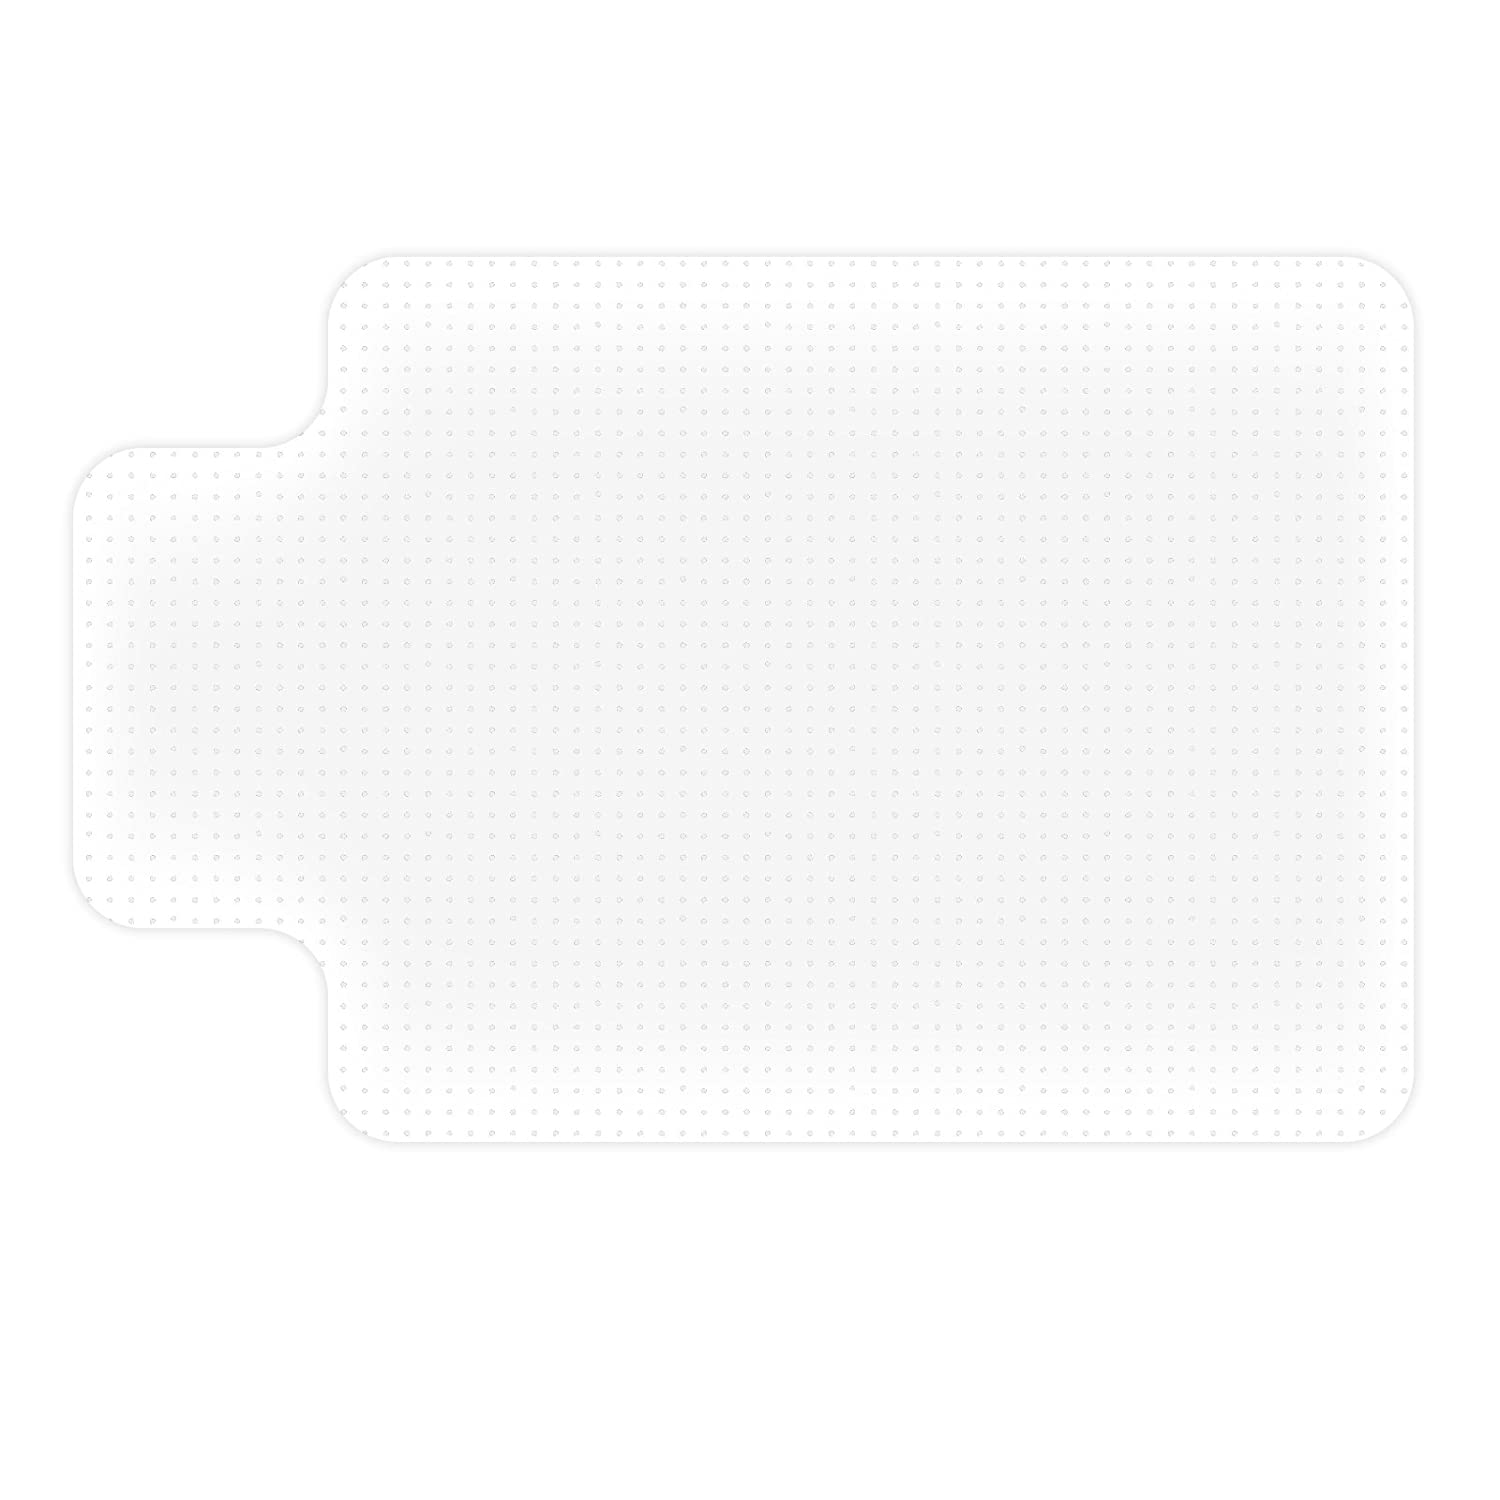 etm Polycarbonate Non Slip Clear Chair Mat for High Pile Carpets Studded Backing 4 Sizes 75x120cm